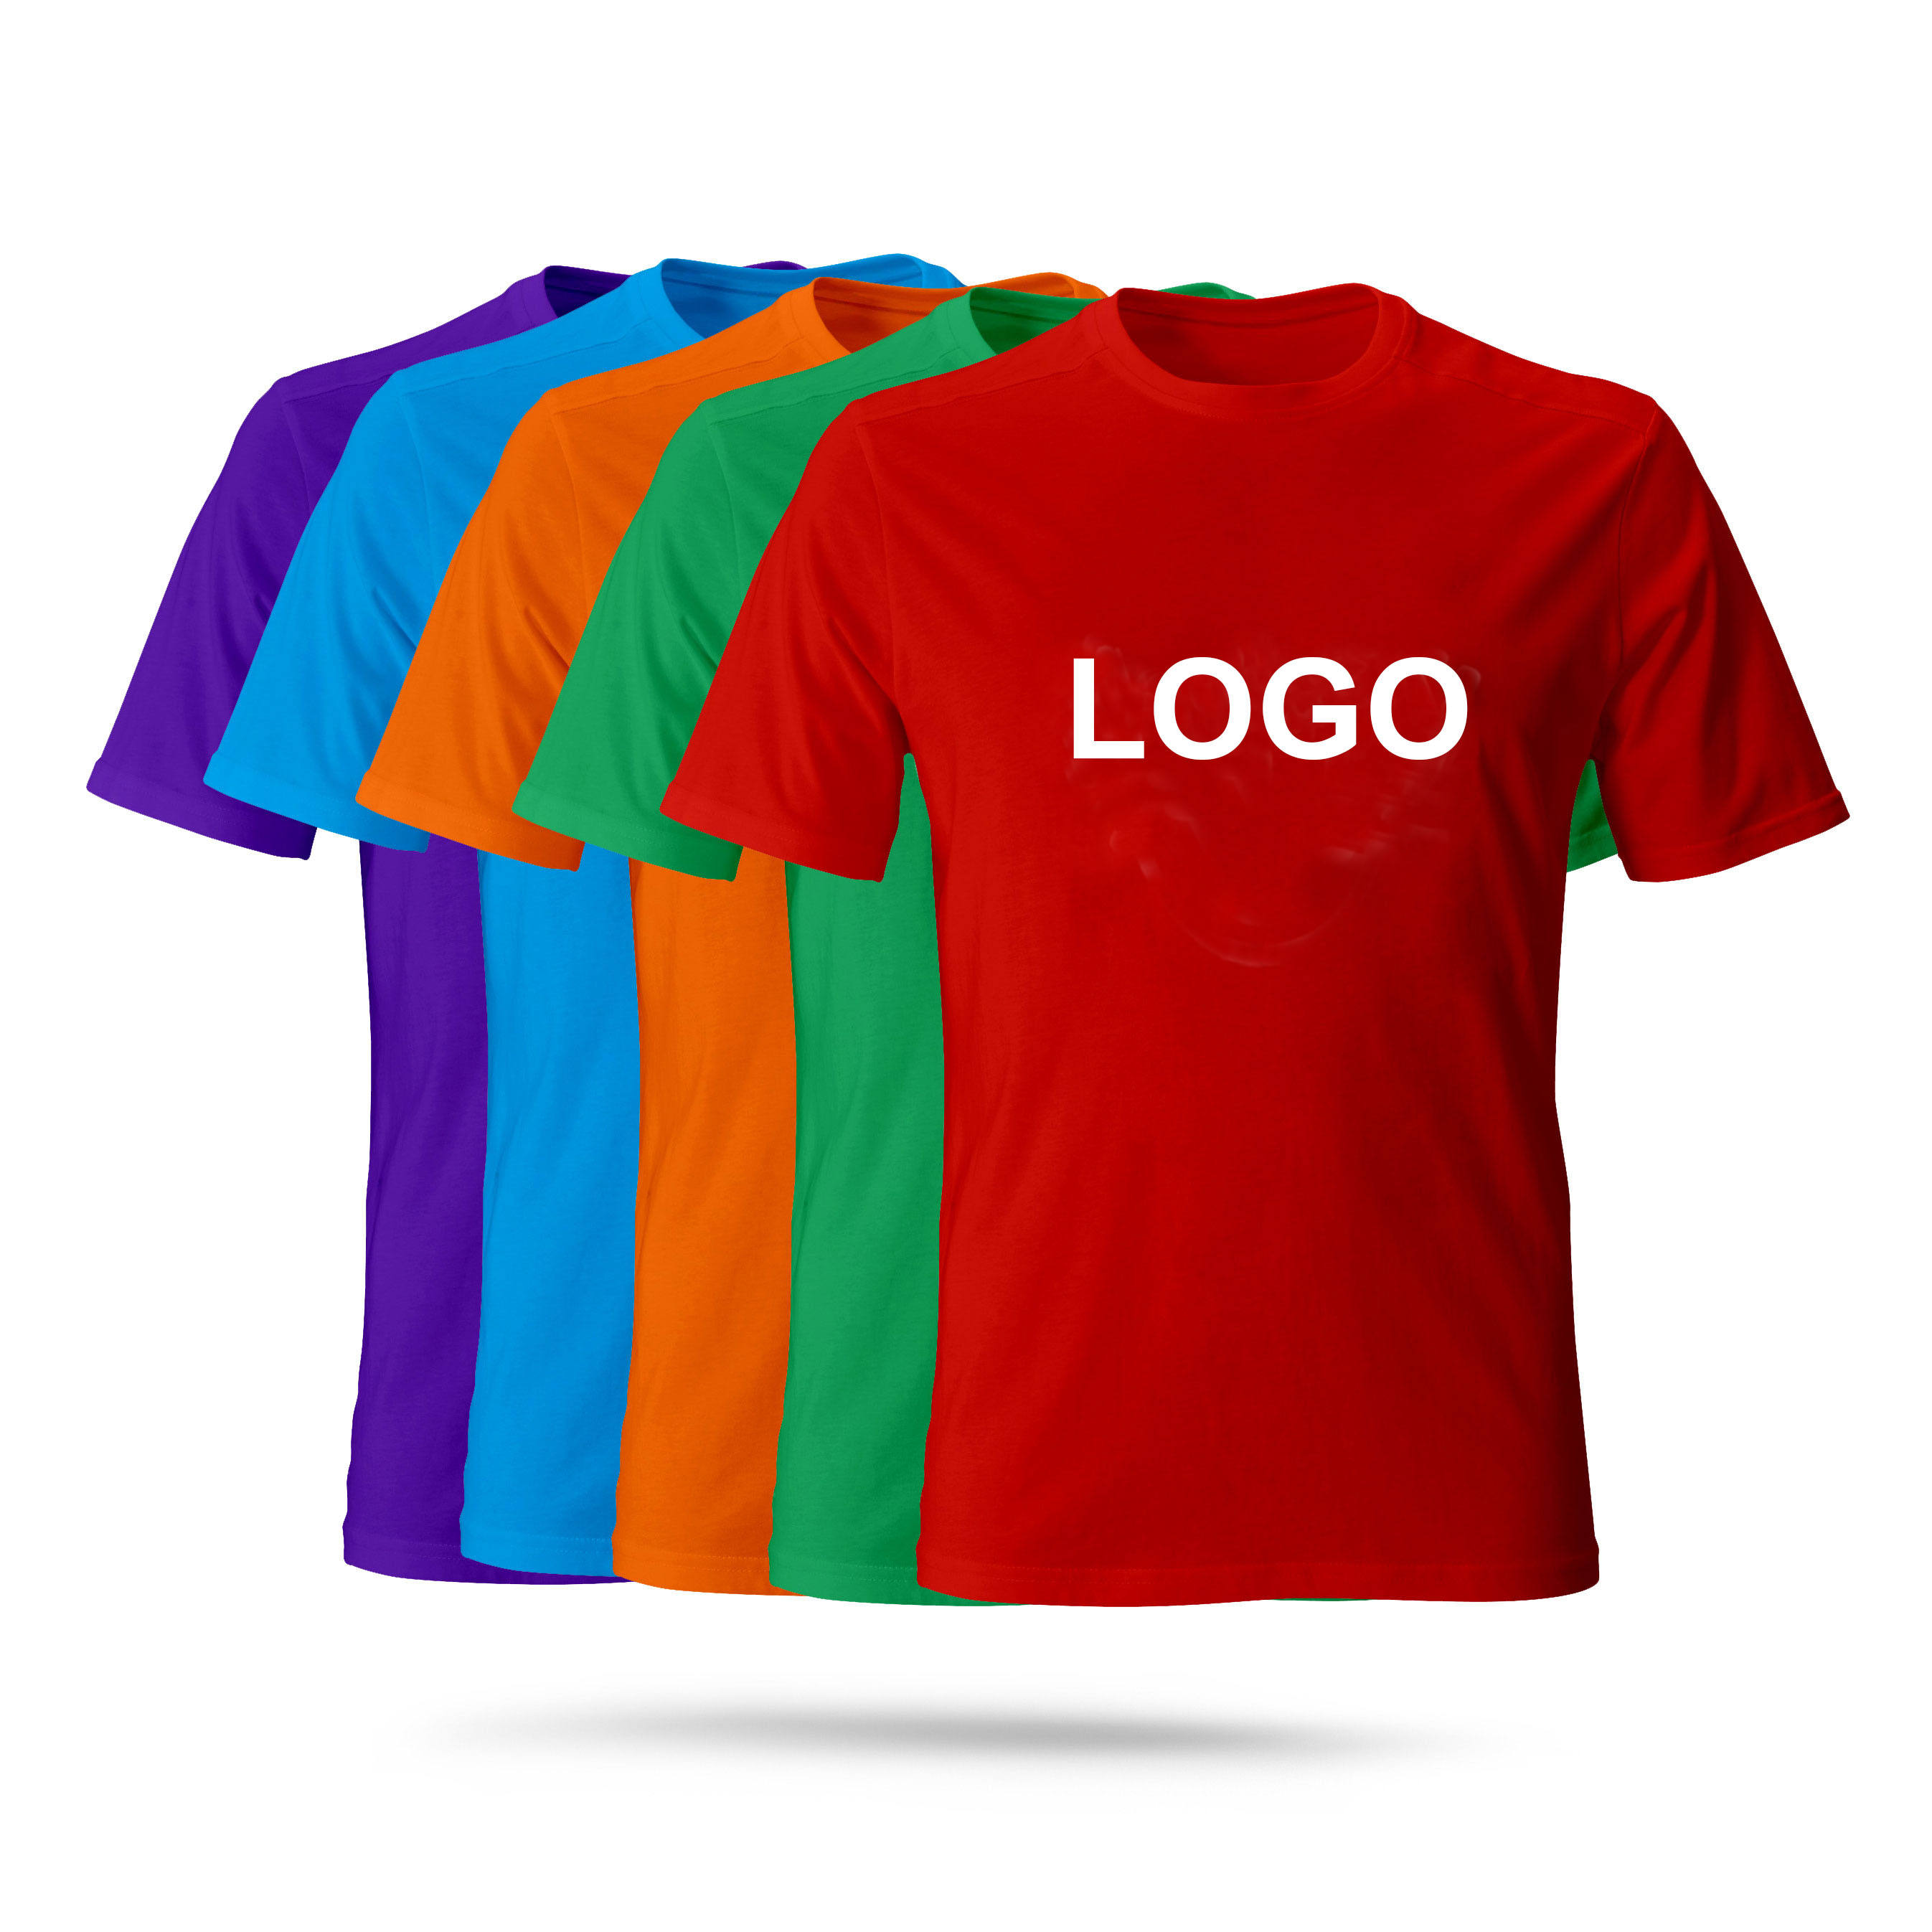 promotional price custom cotton printed t-shirt manufactures in guangzhou